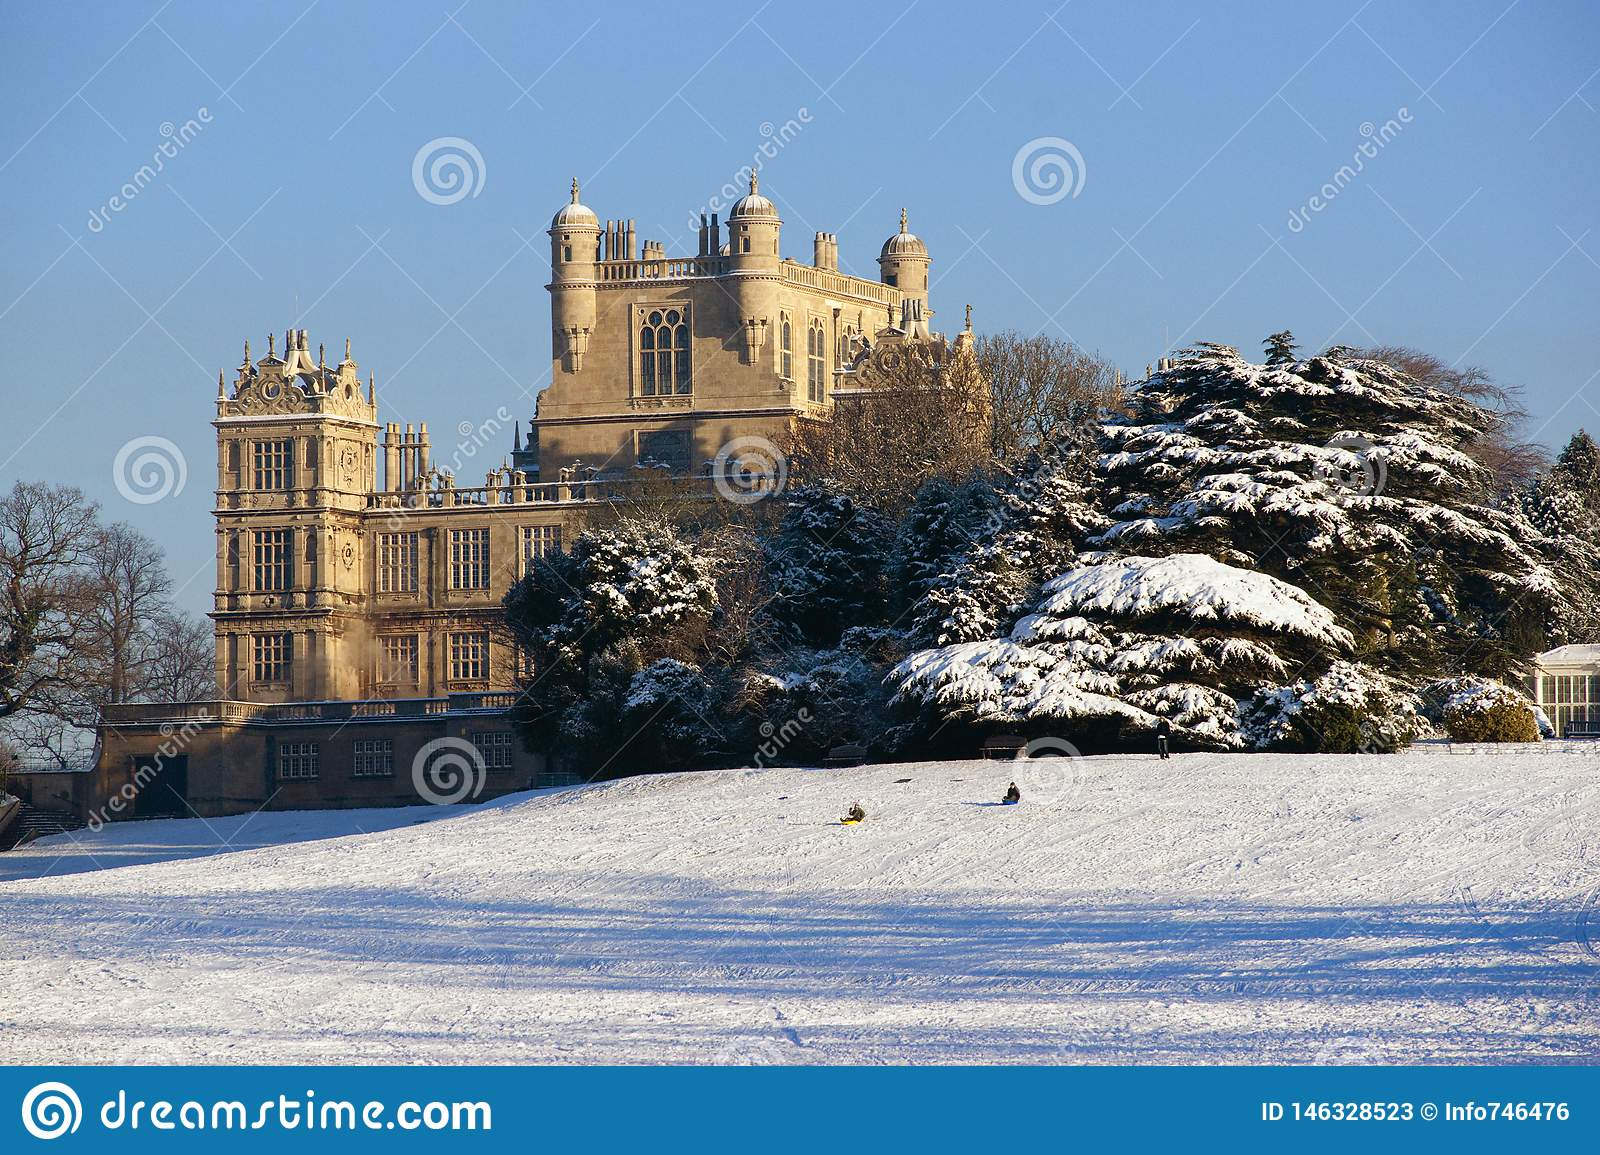 A view of the Elizabethan Wollaton Hall museum and gardens in the snow in winter in Nottingham, Nottinghamshire taken 3rd December